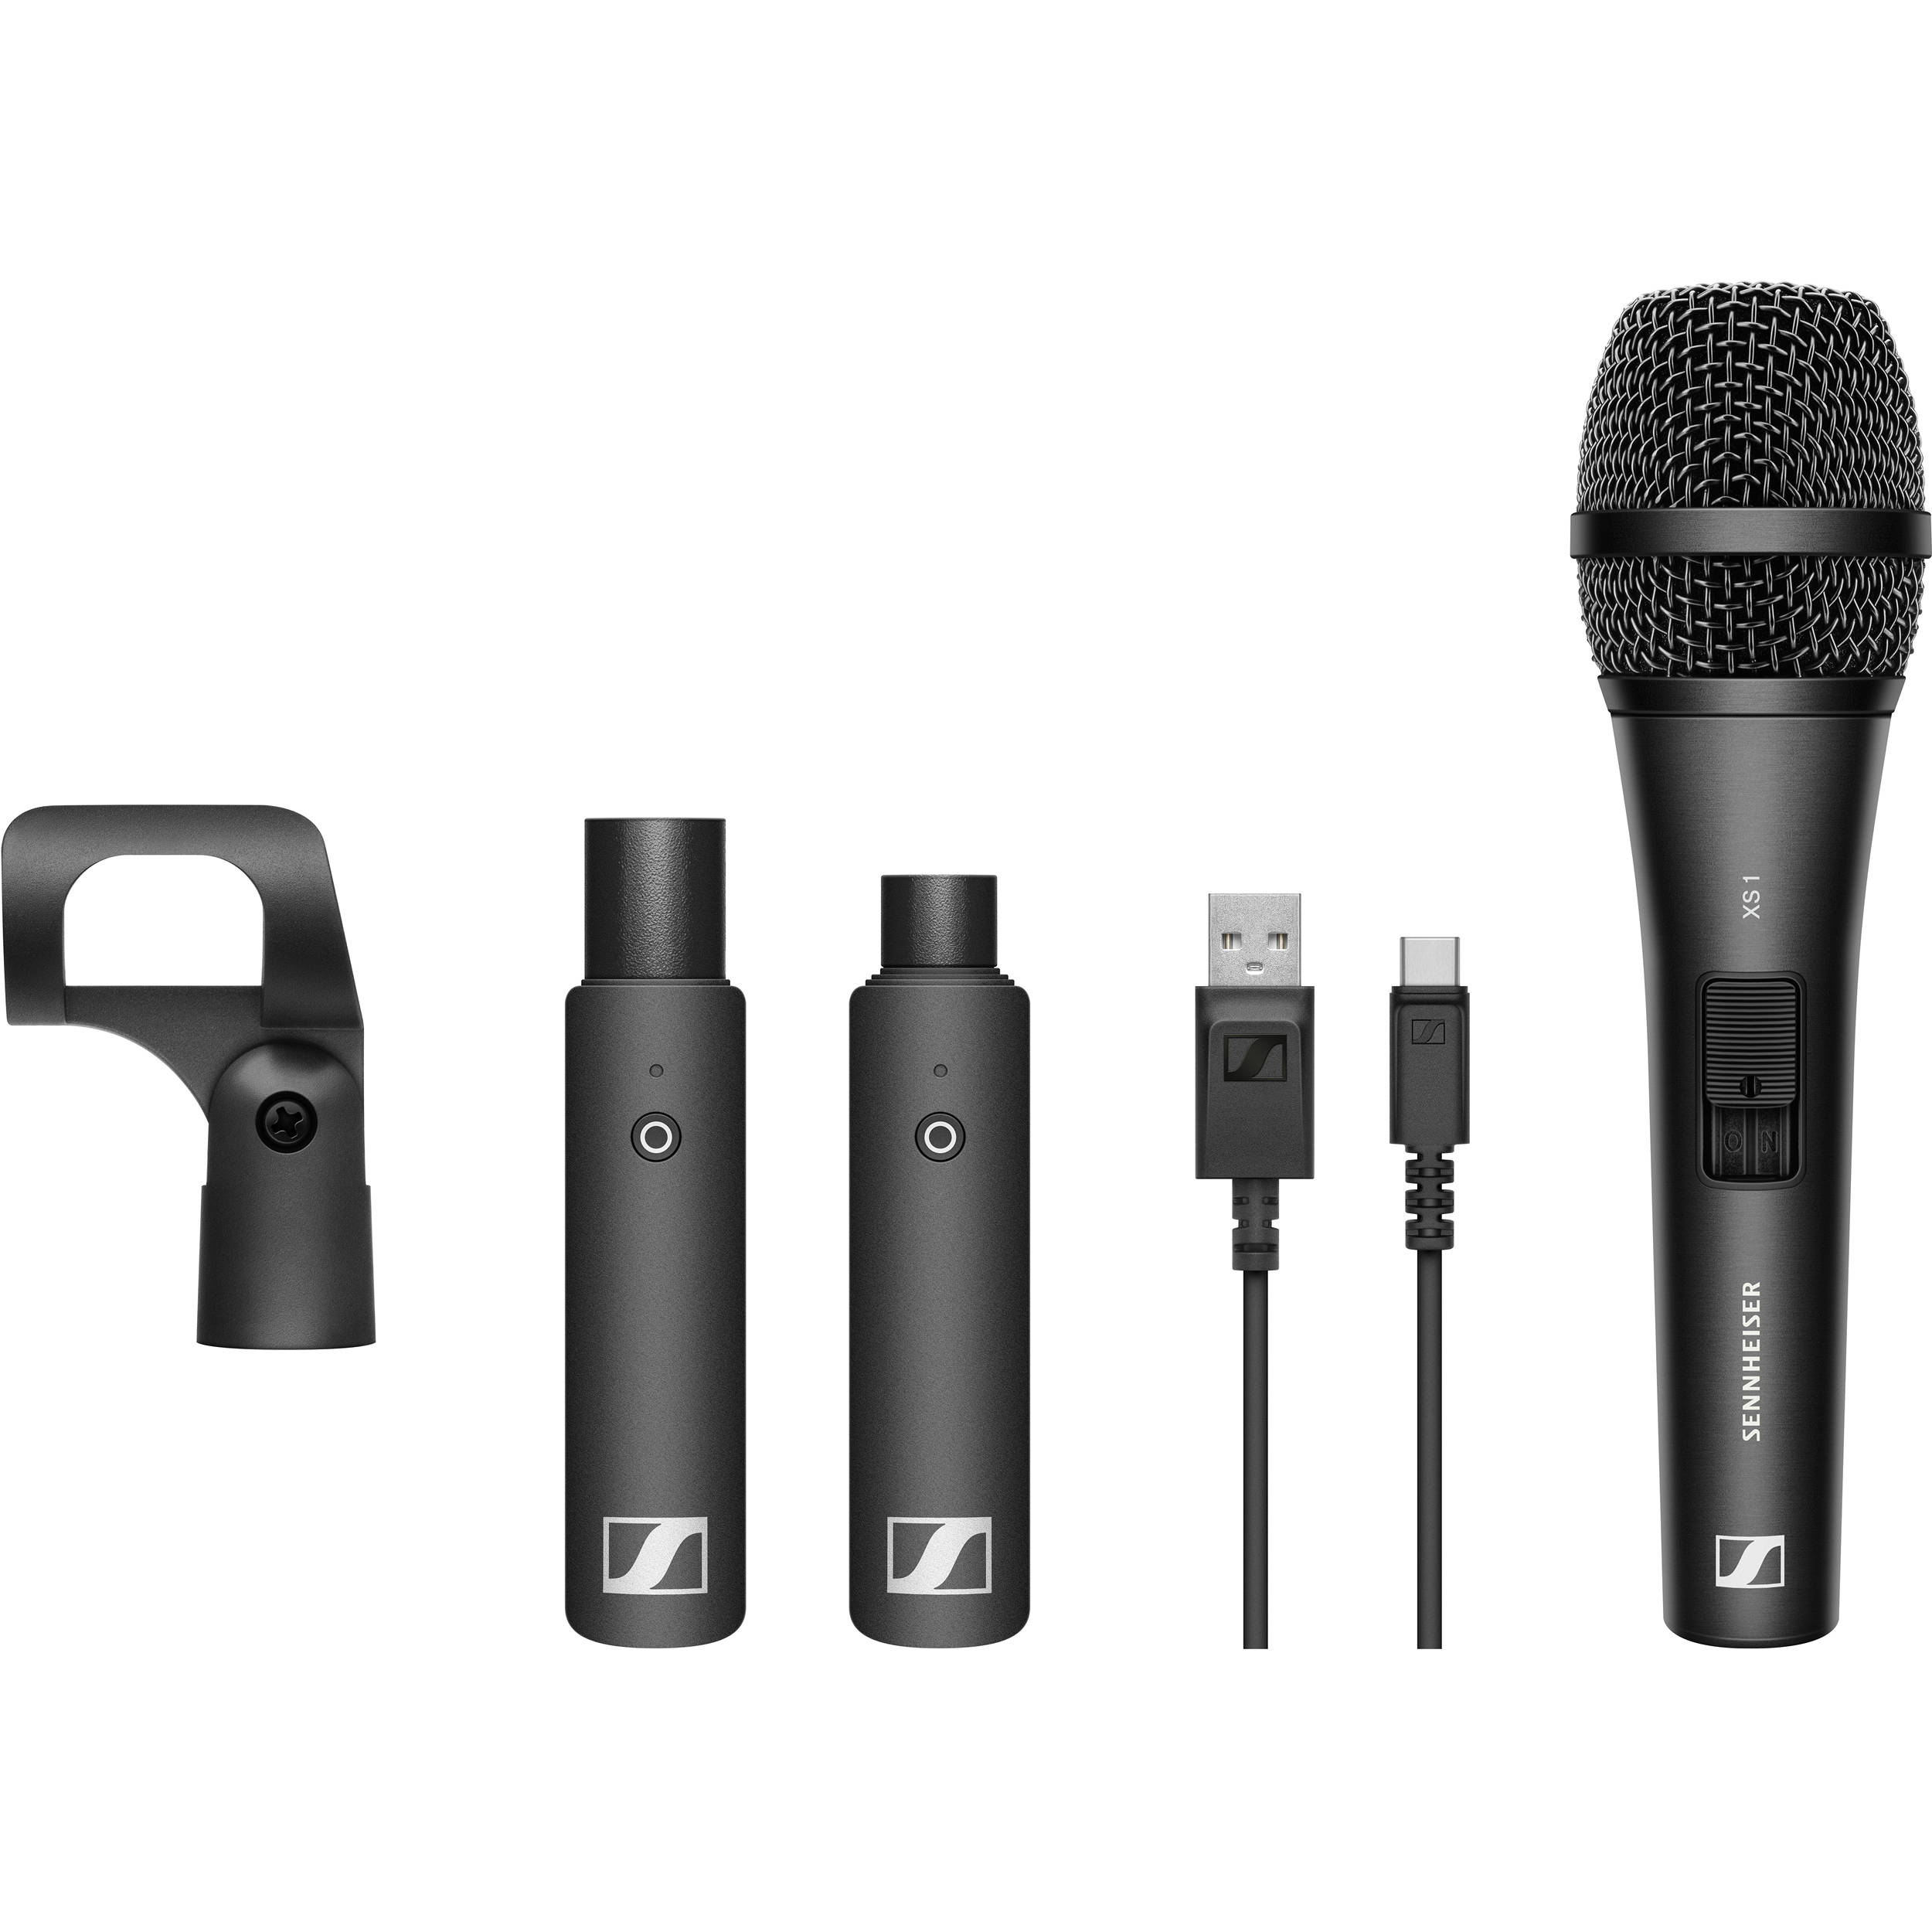 Sennheiser Xsw-D Portabele Interview Set Microphone Audio audio